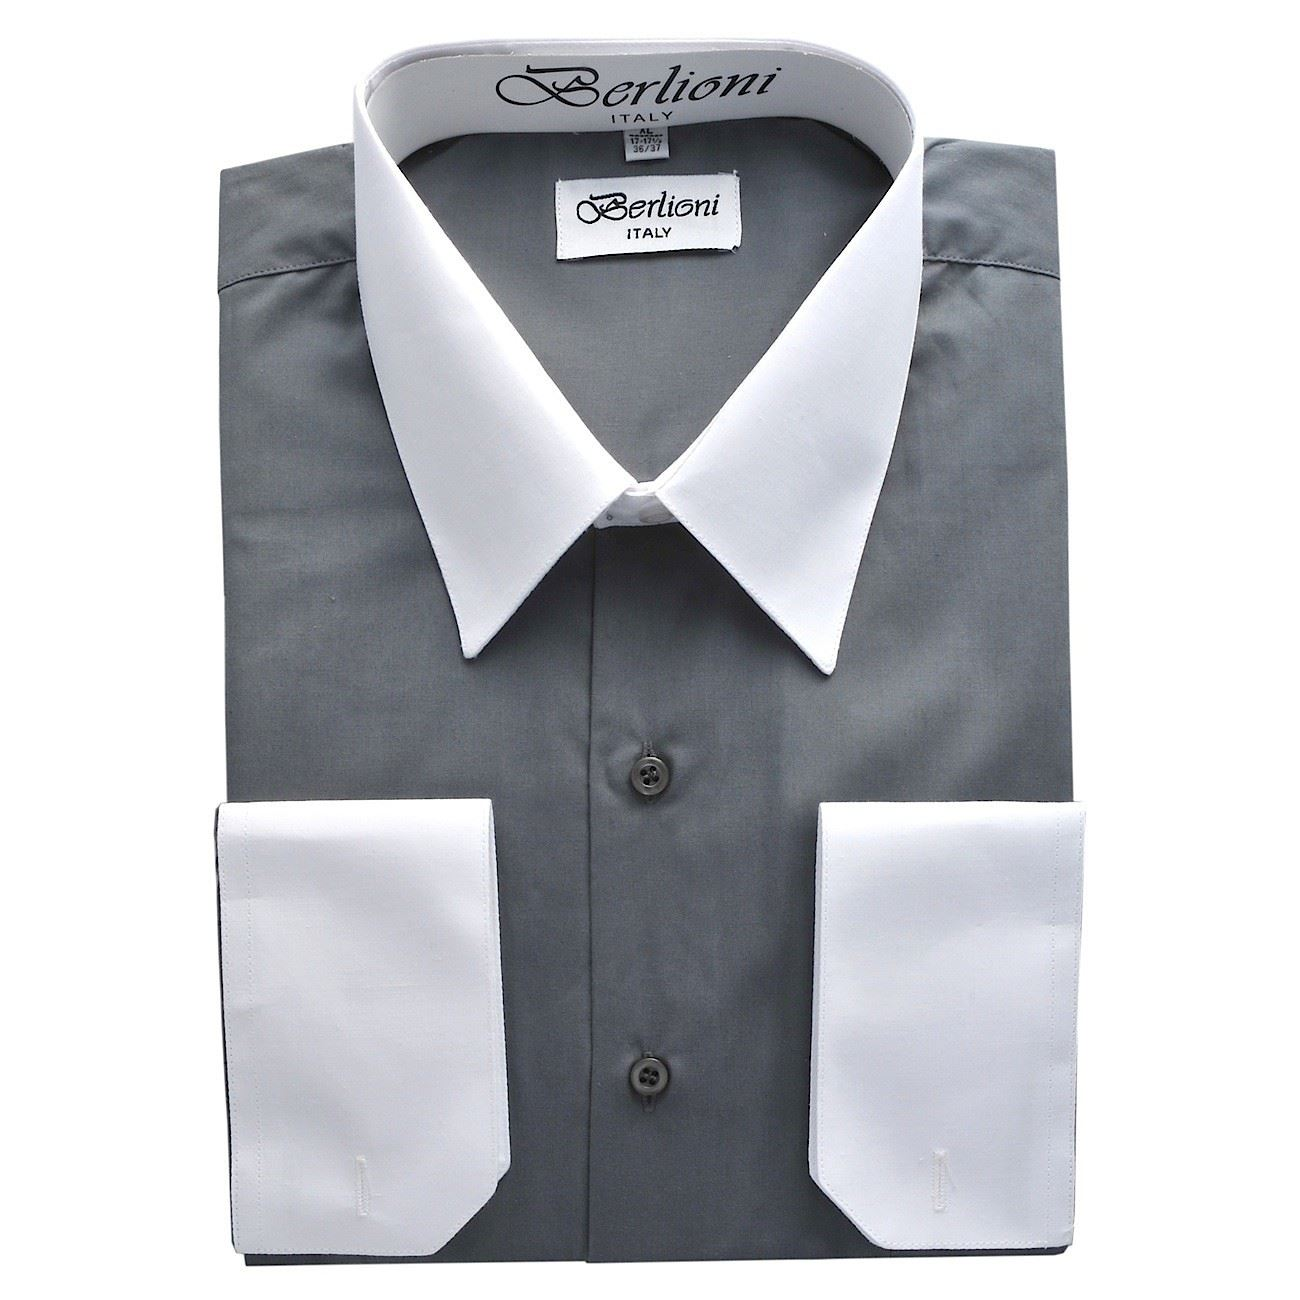 Mens dress shirt with colored cuffs and collars